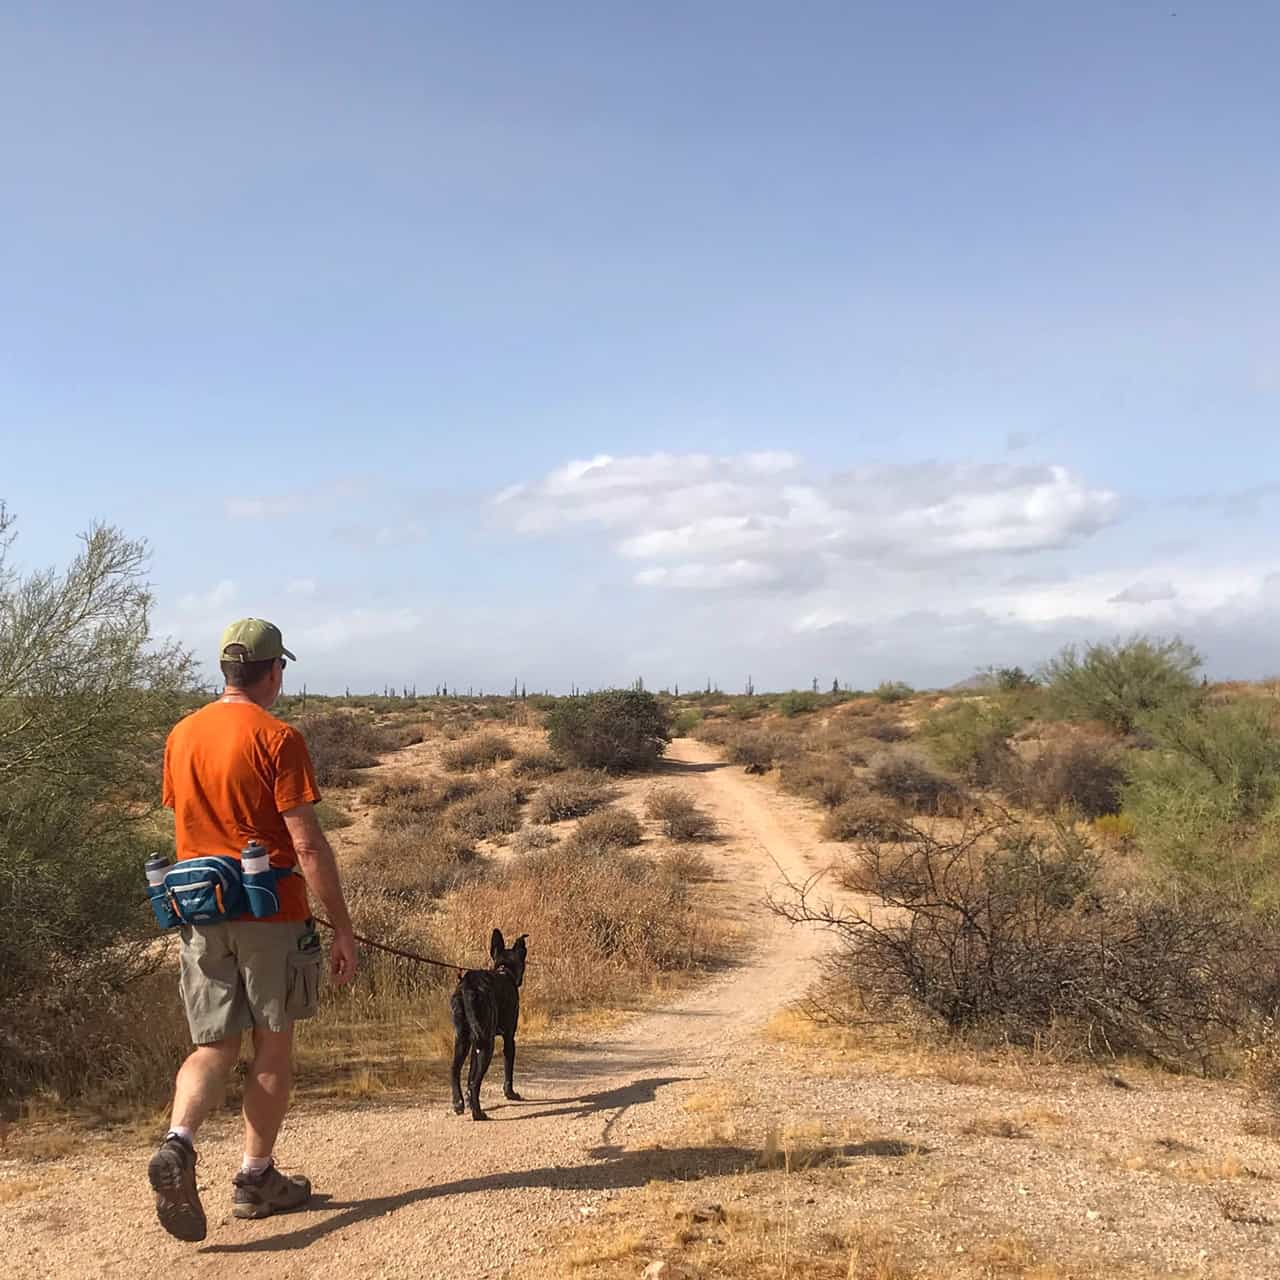 Pet Friendly Camping Near Phoenix - McDowell Mountain Regional Park